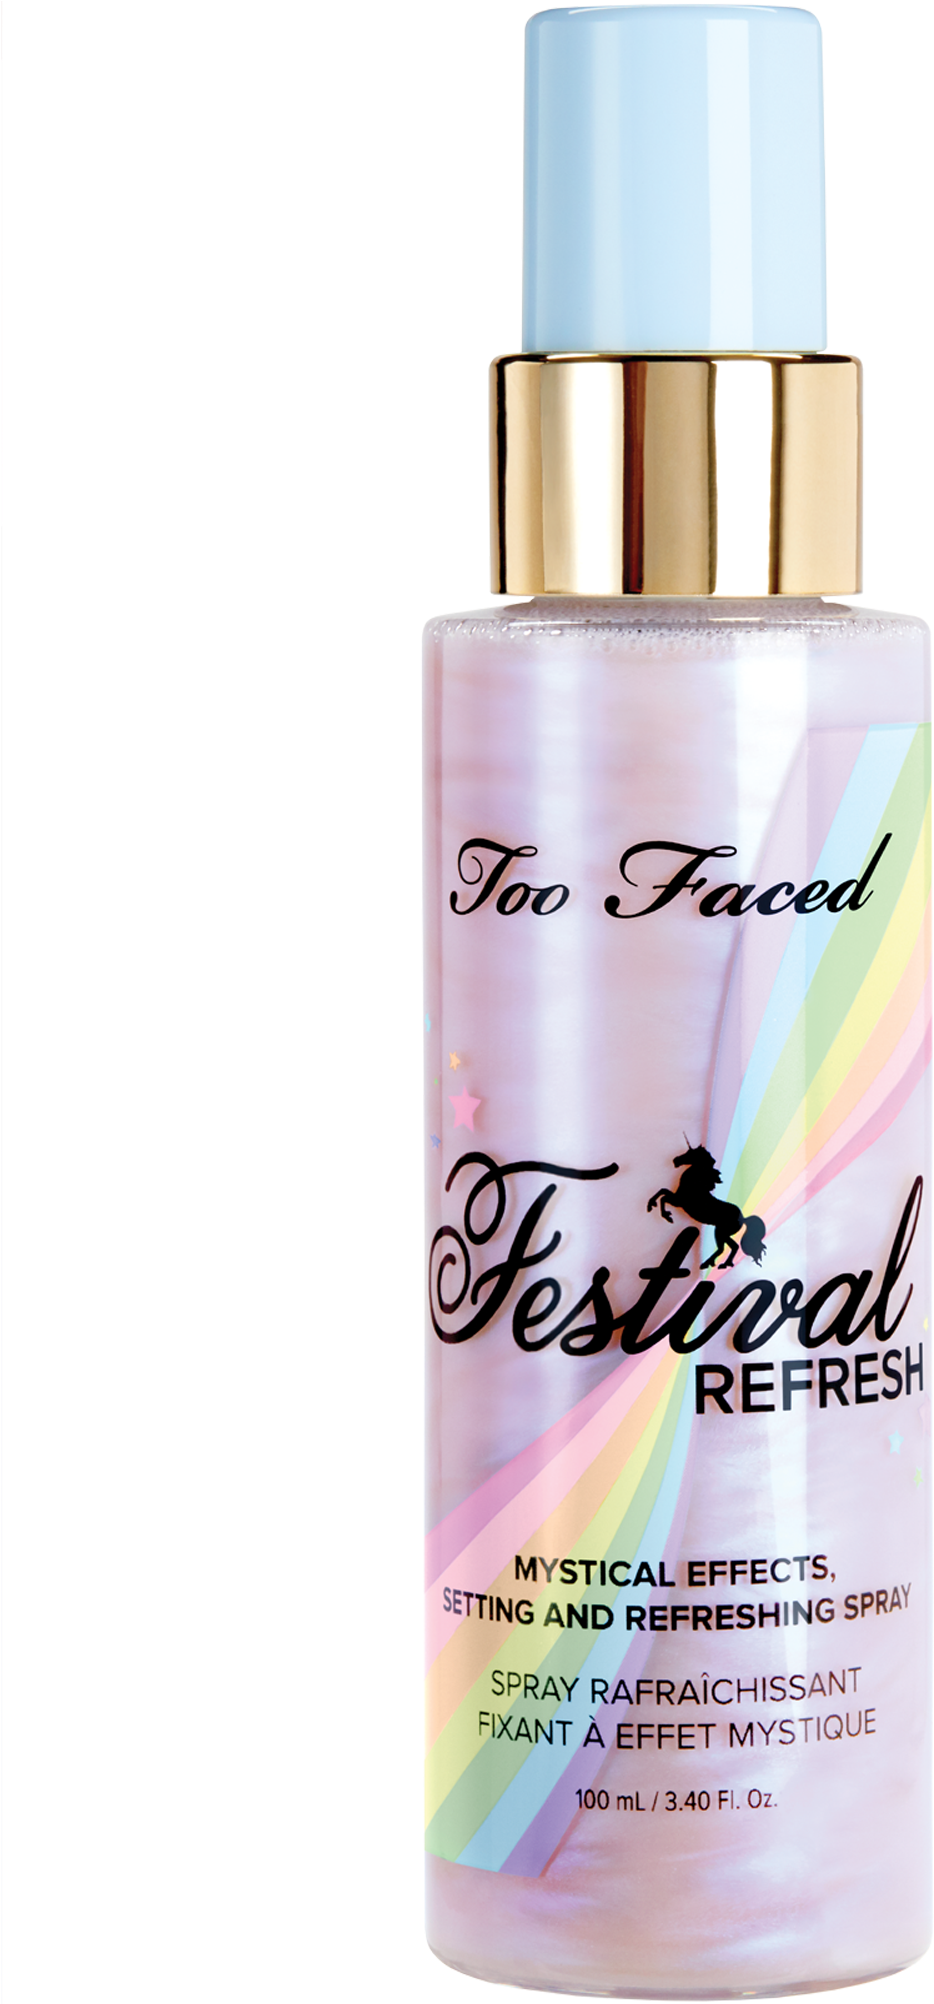 Festival Refresh Spray by Too Faced #16